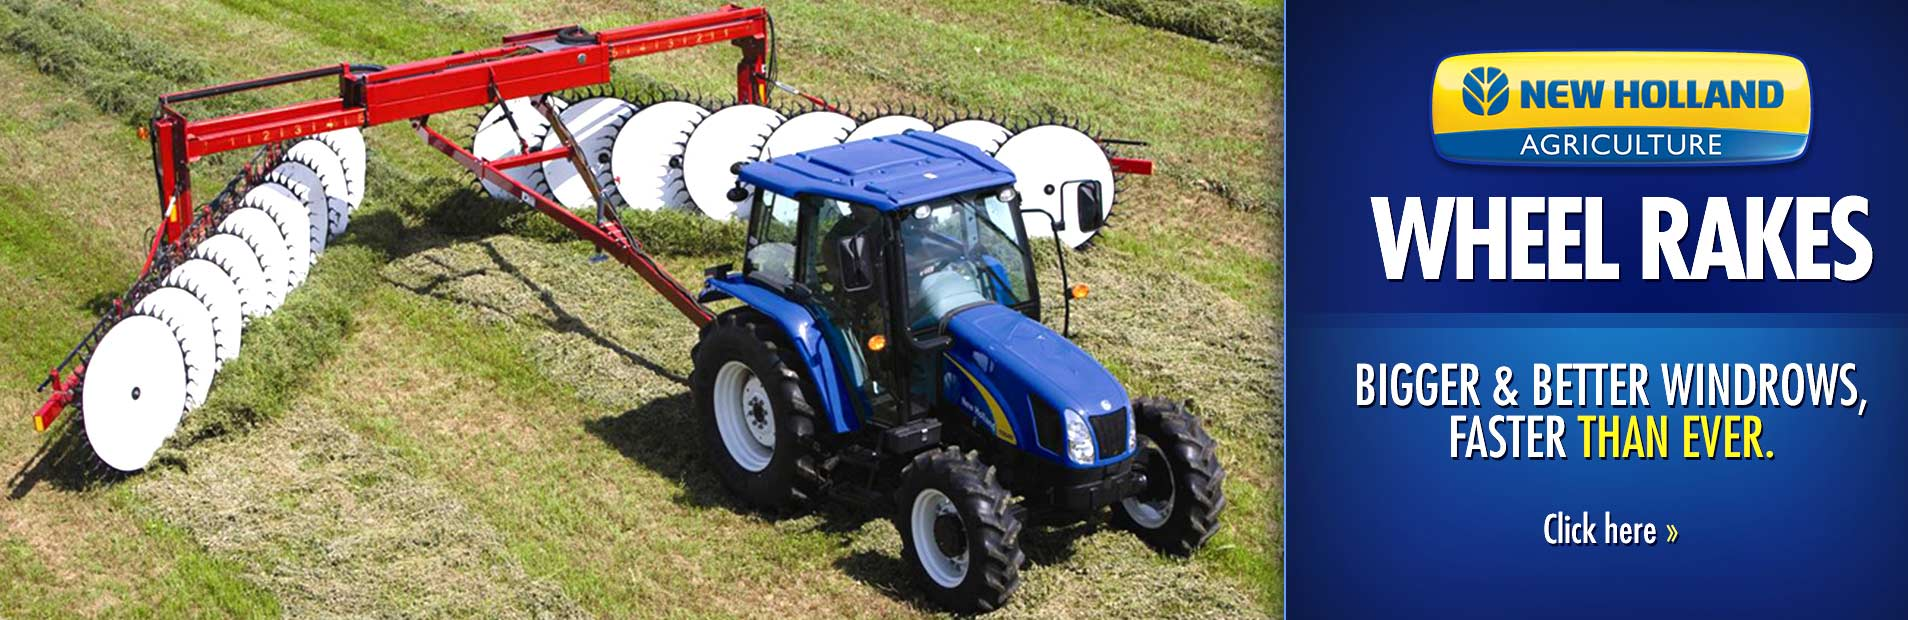 Click here to view our selection of New Holland wheel rakes!